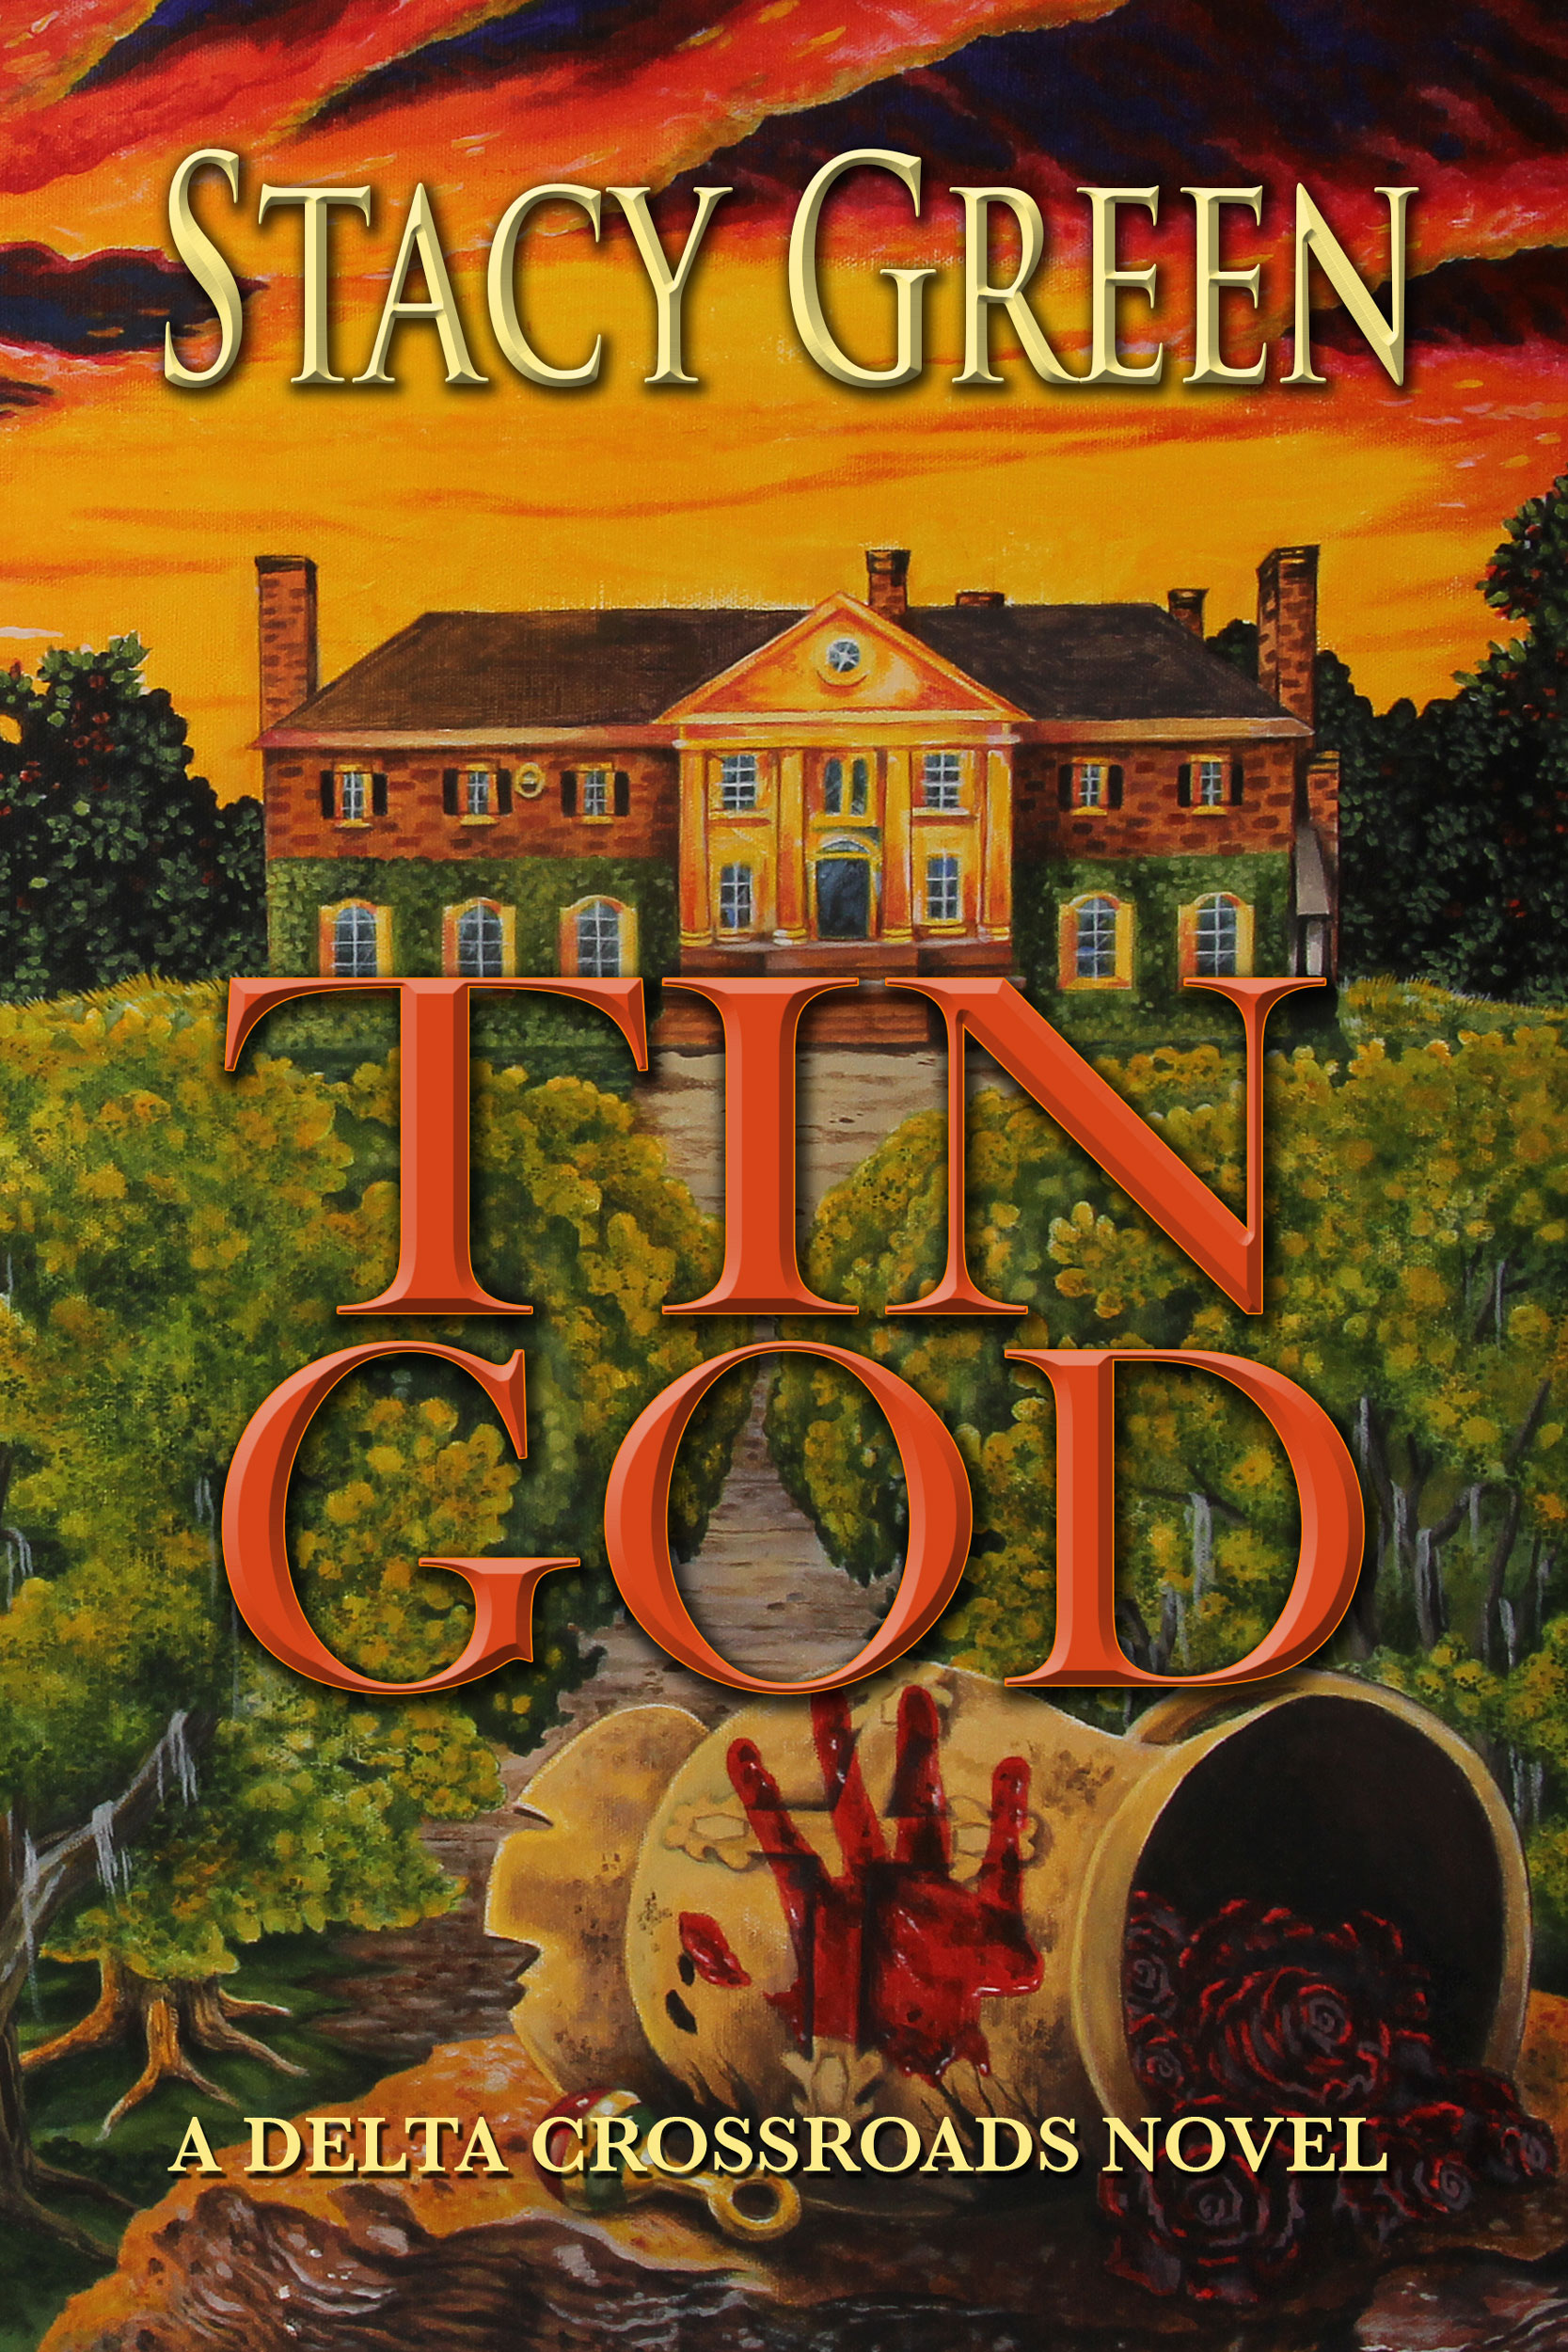 Tin_Gods_front_cover_amazon (1)